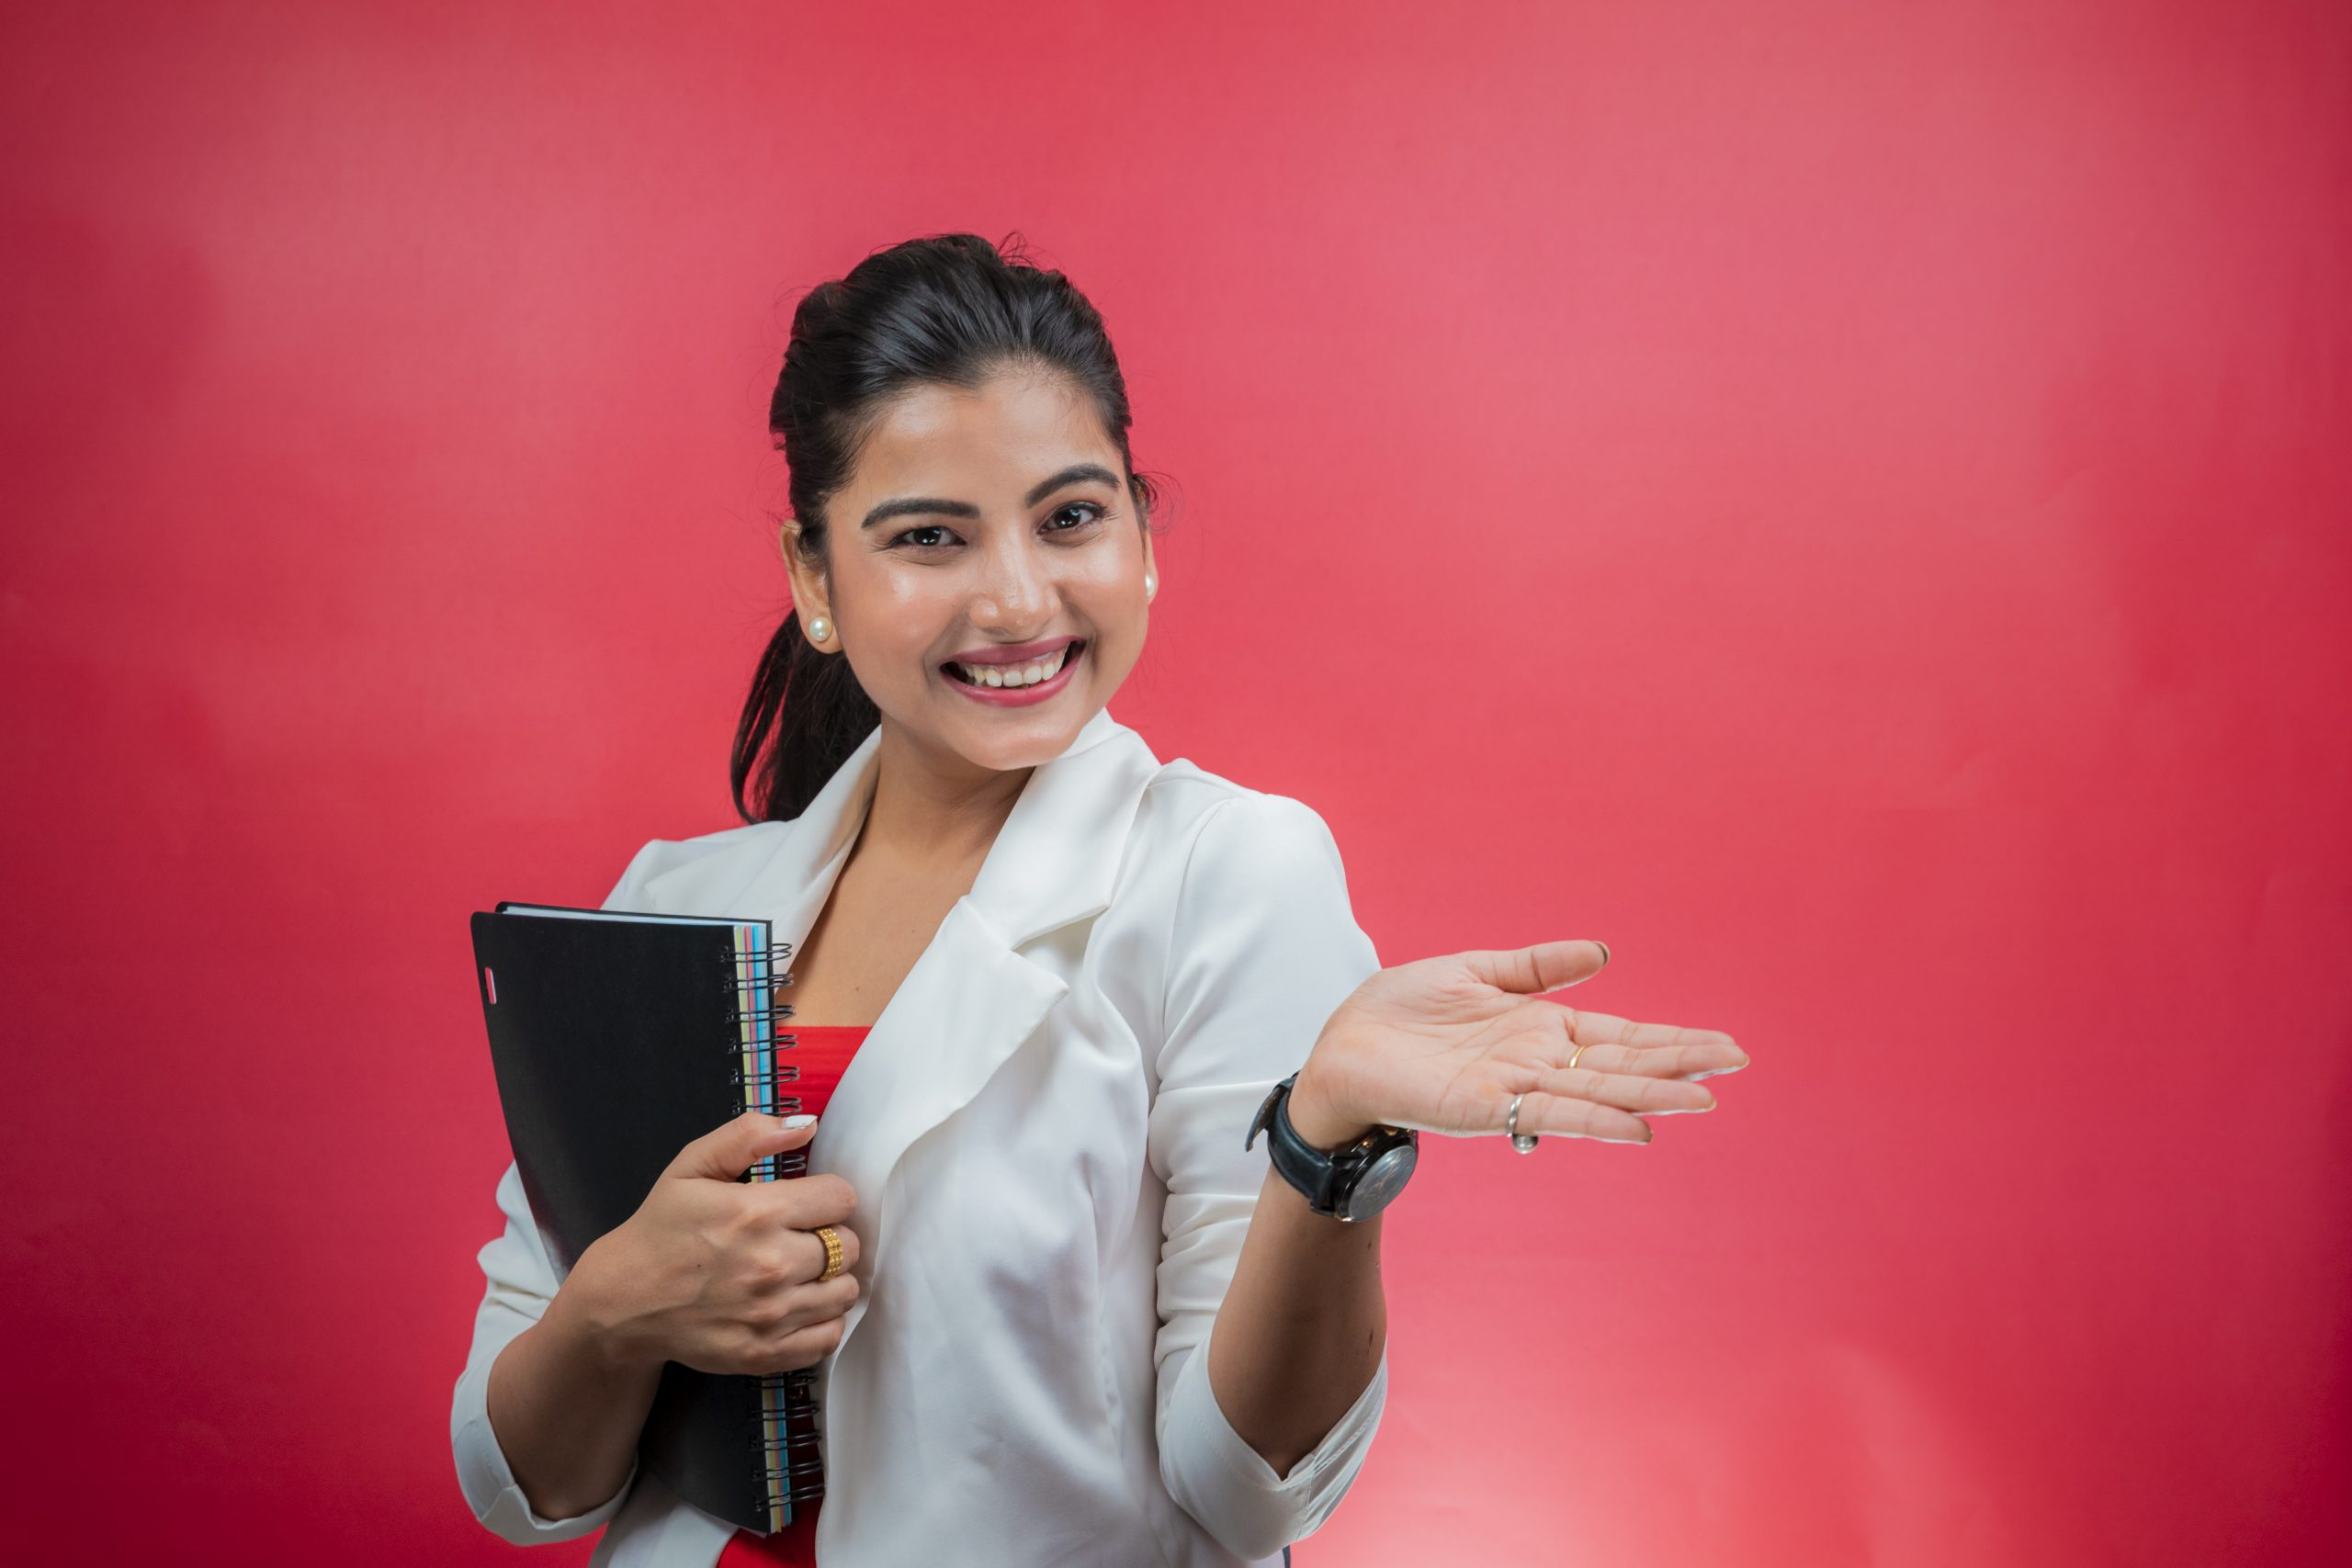 Happy young woman holding notebook and smiling with hand pointing sideways